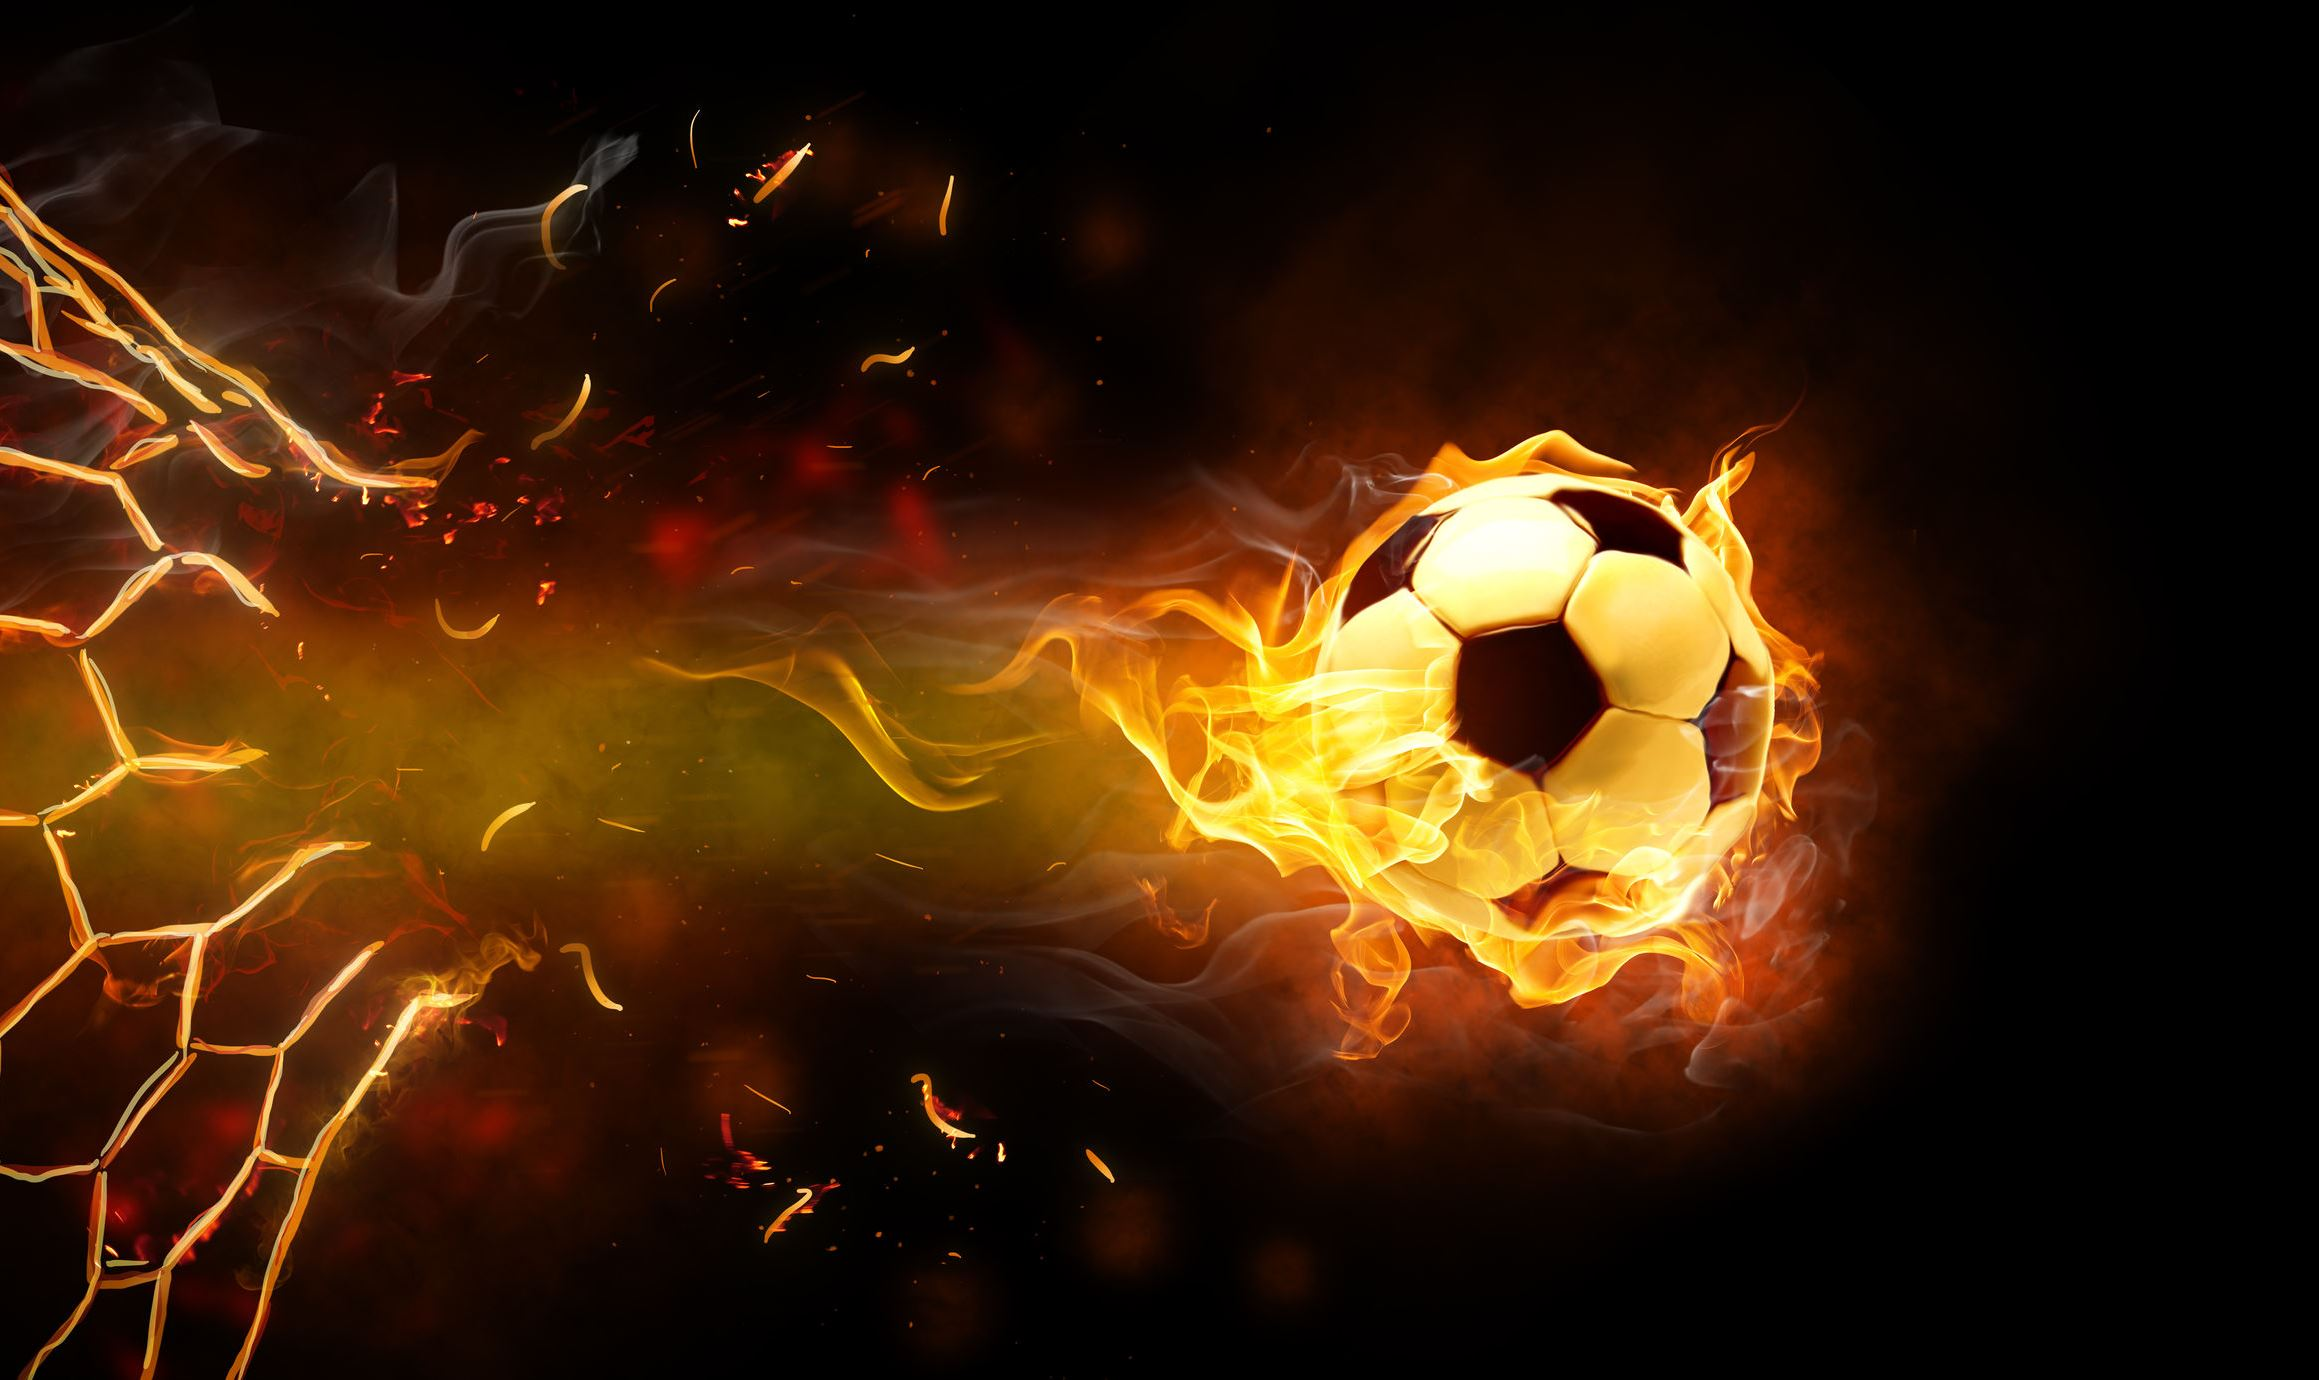 Flaming football smashing through net